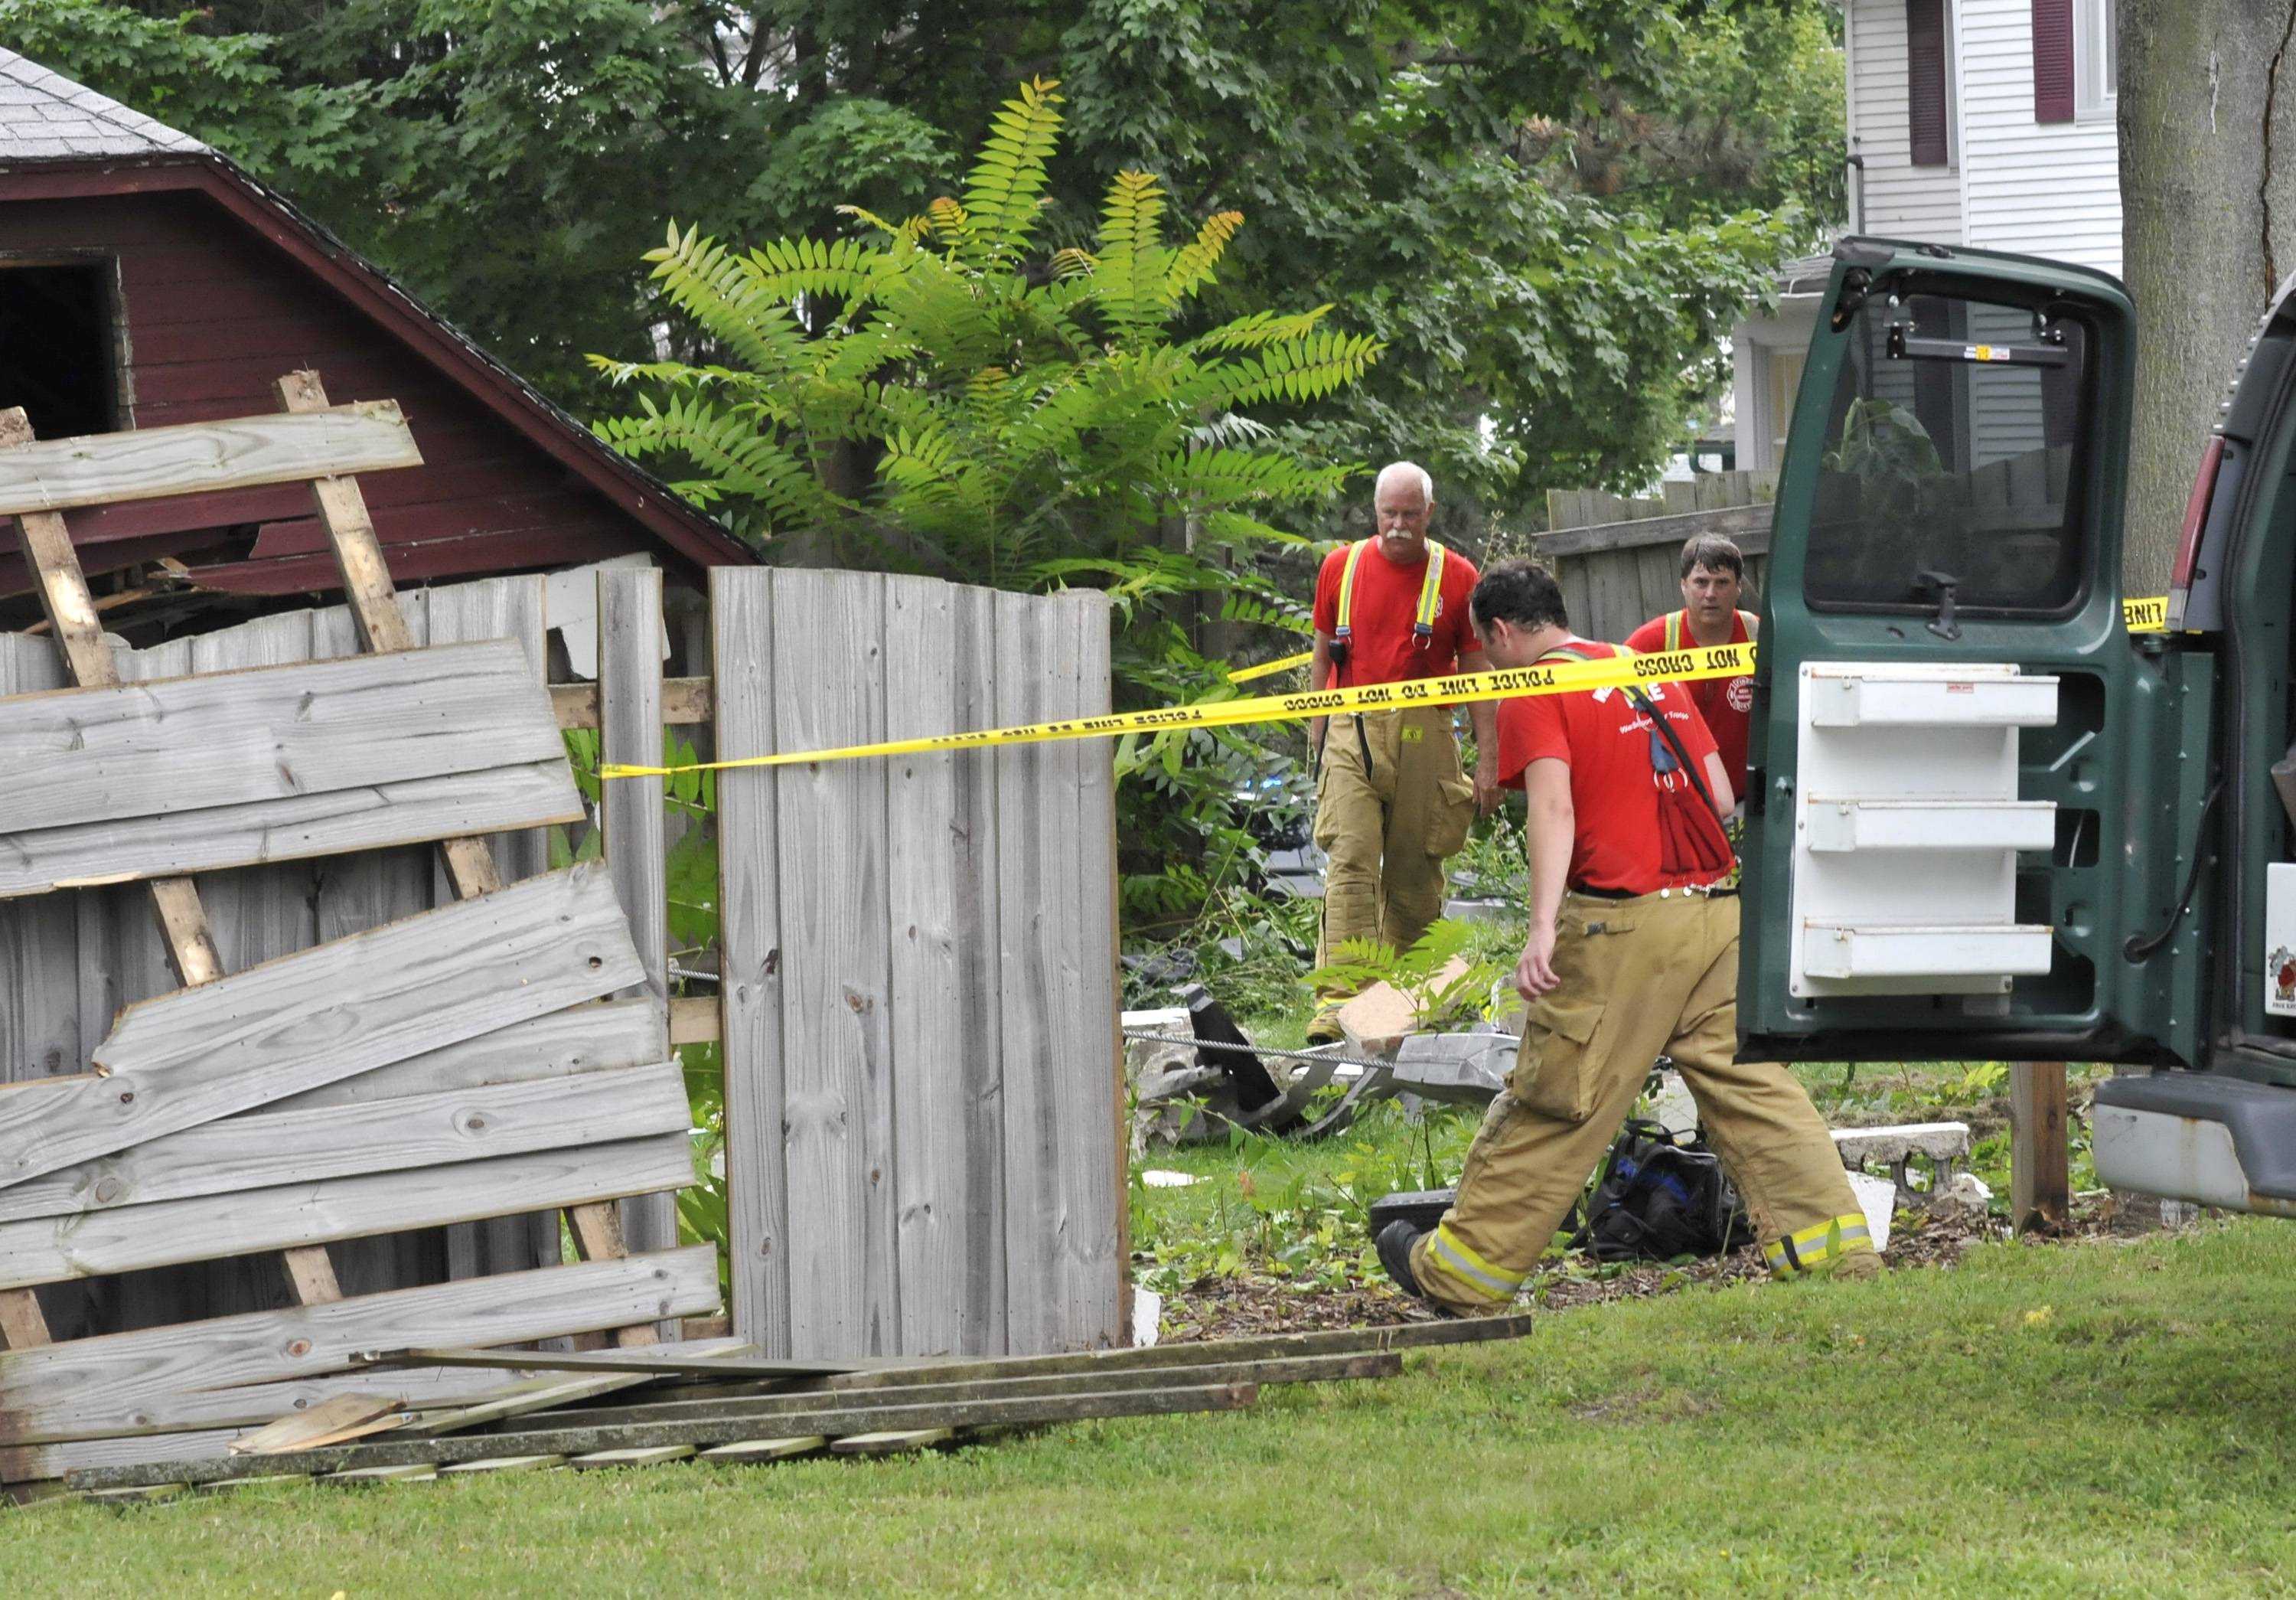 Witnesses reported hearing a loud bang Friday morning when a car left the street on the 400 block of Colford Avenue in West Chicago and drove through a garage.